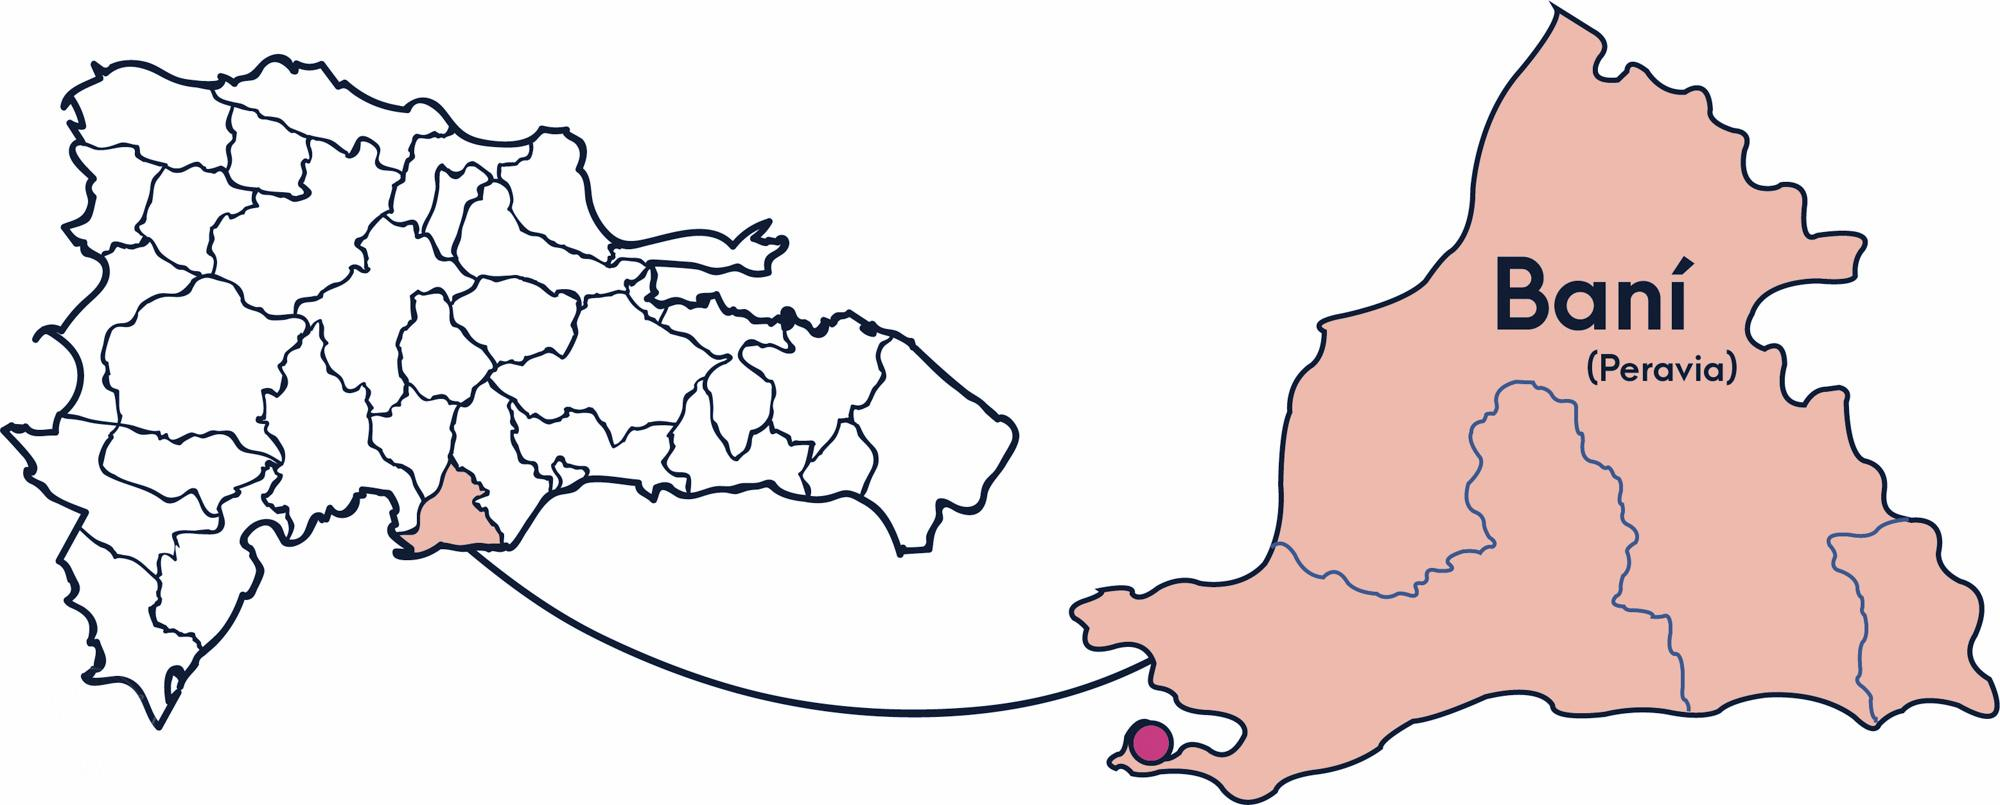 A Map of the Dominican Republic showing where the Bani city region is in orange.